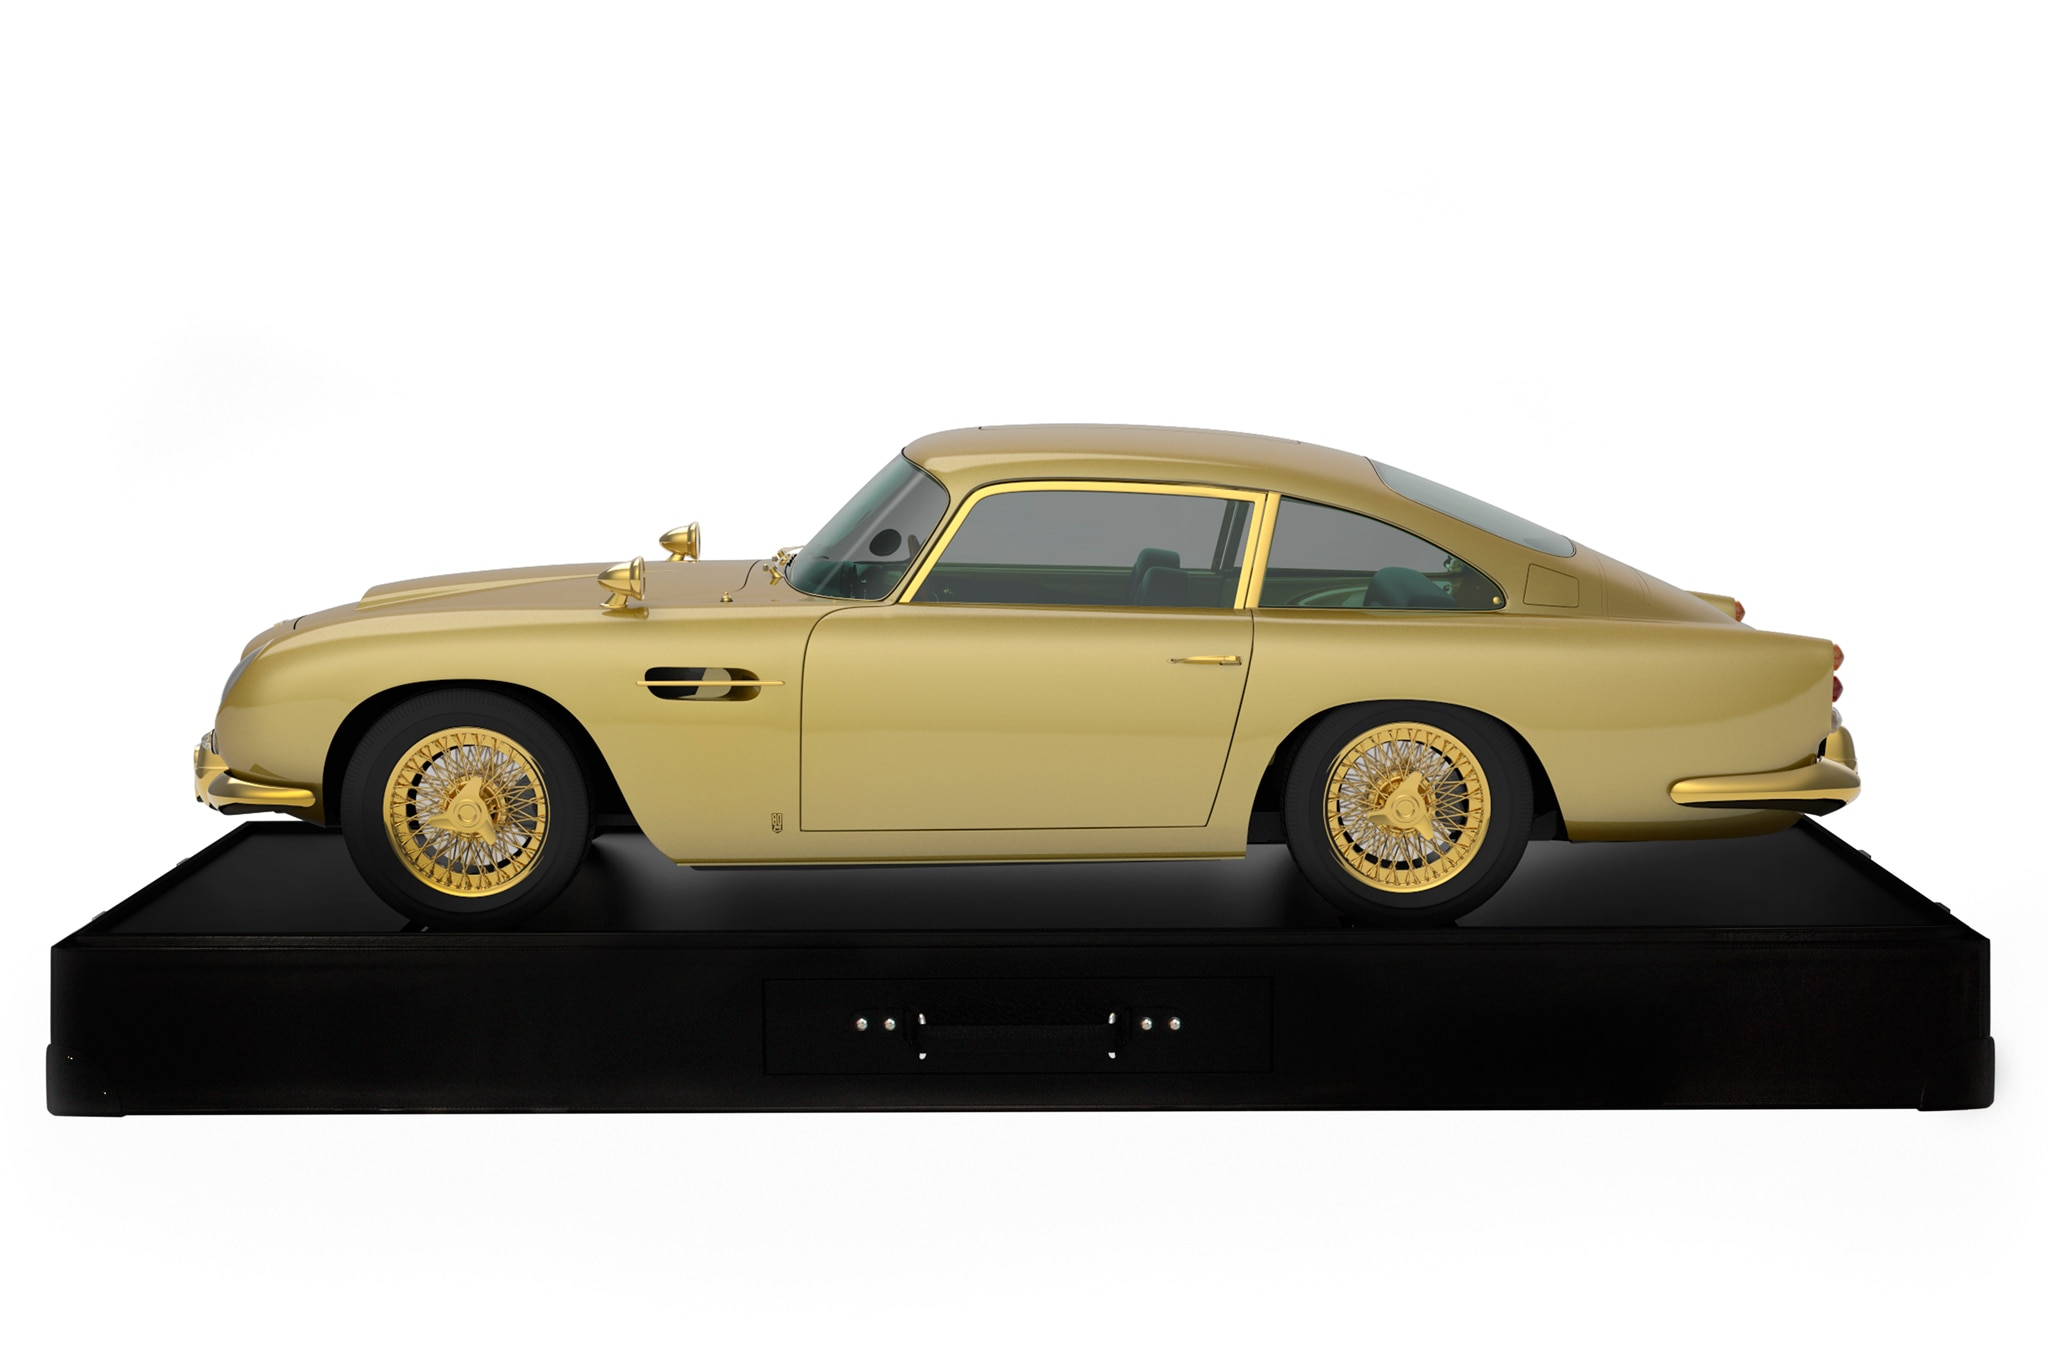 Gold Aston Martin Db5 Model Honors 50 Years Since Goldfinger